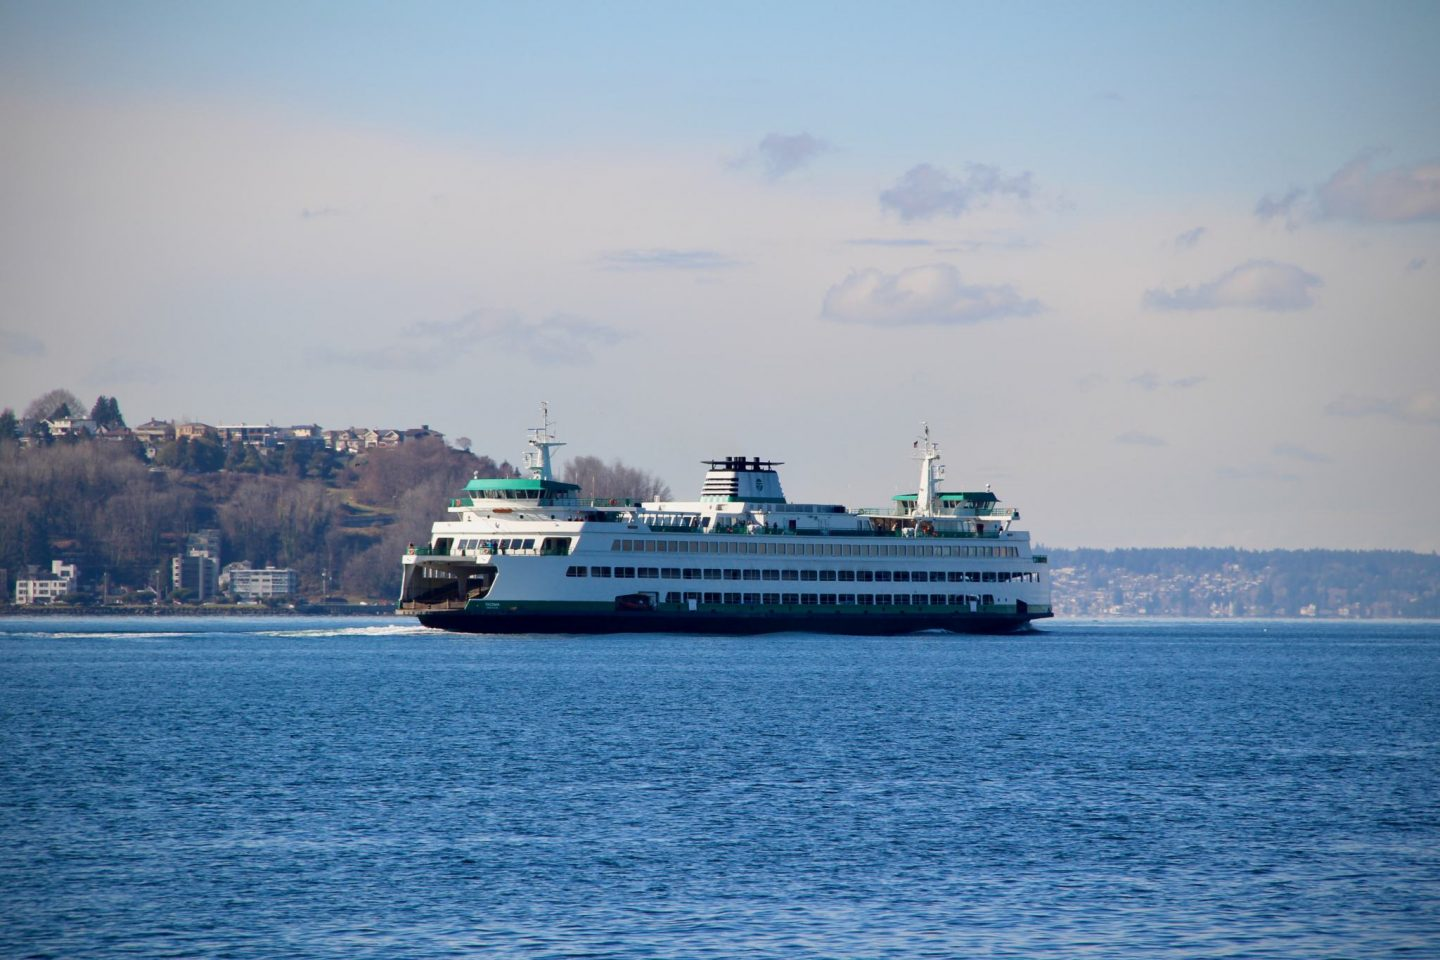 Seattle Ferry, Washington - The Spectacular Adventurer